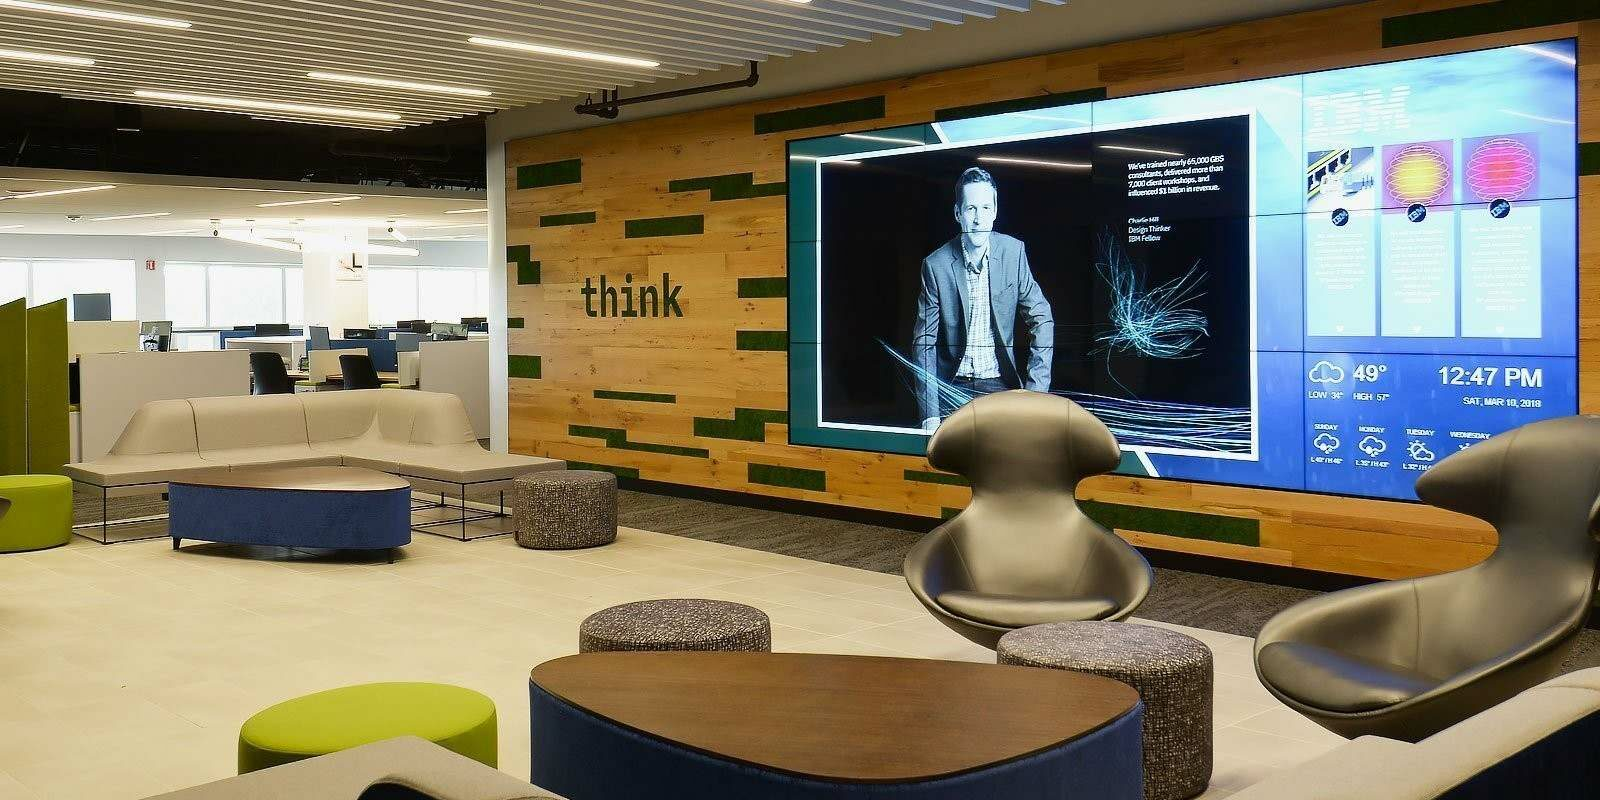 red dot - Think Video Wall